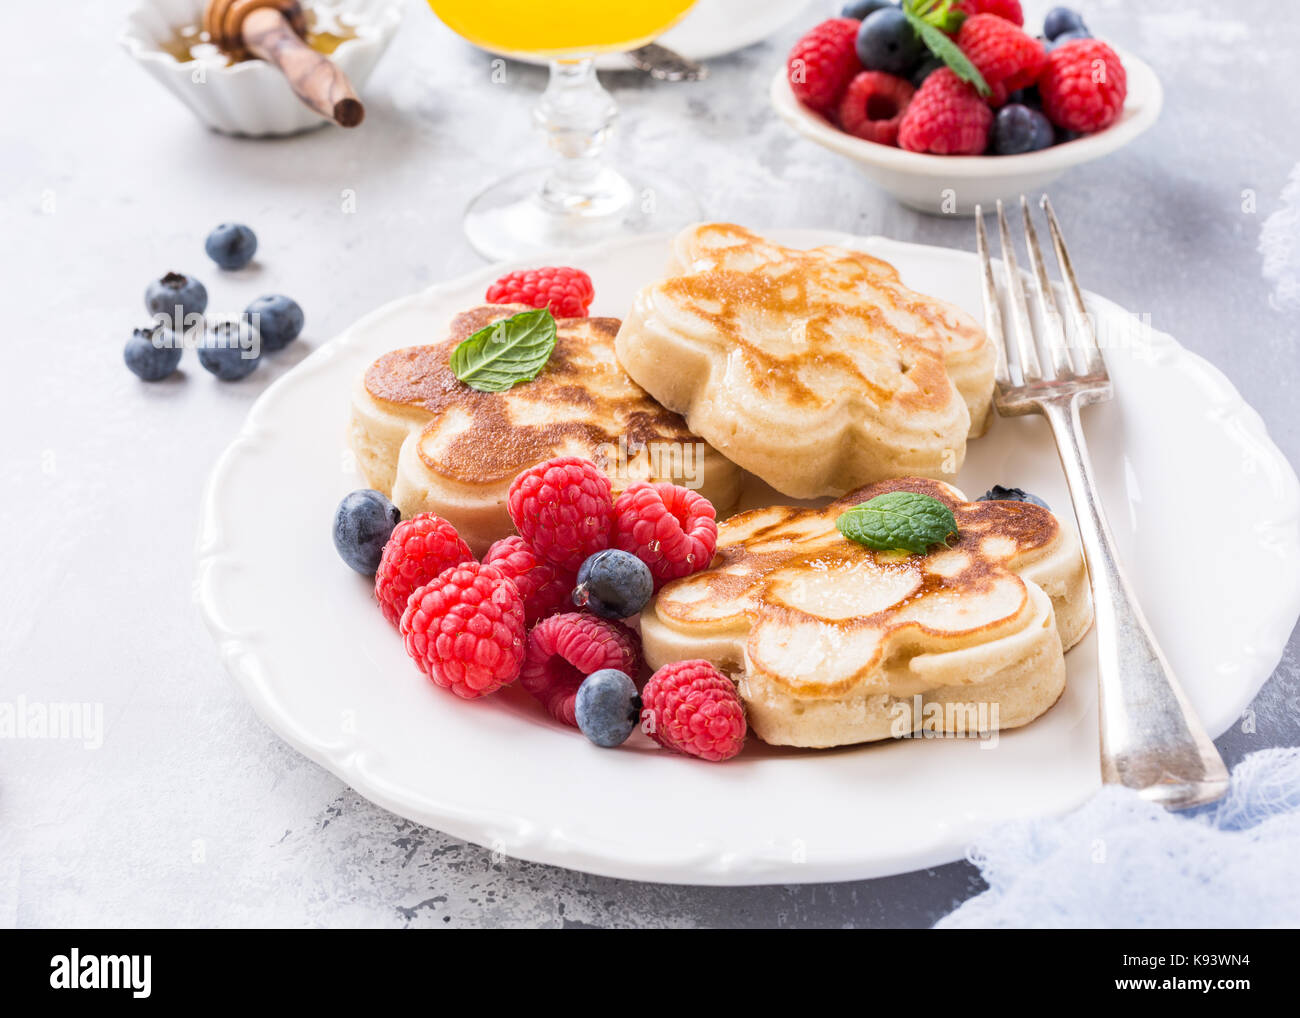 Breakfast with scotch pancakes - Stock Image